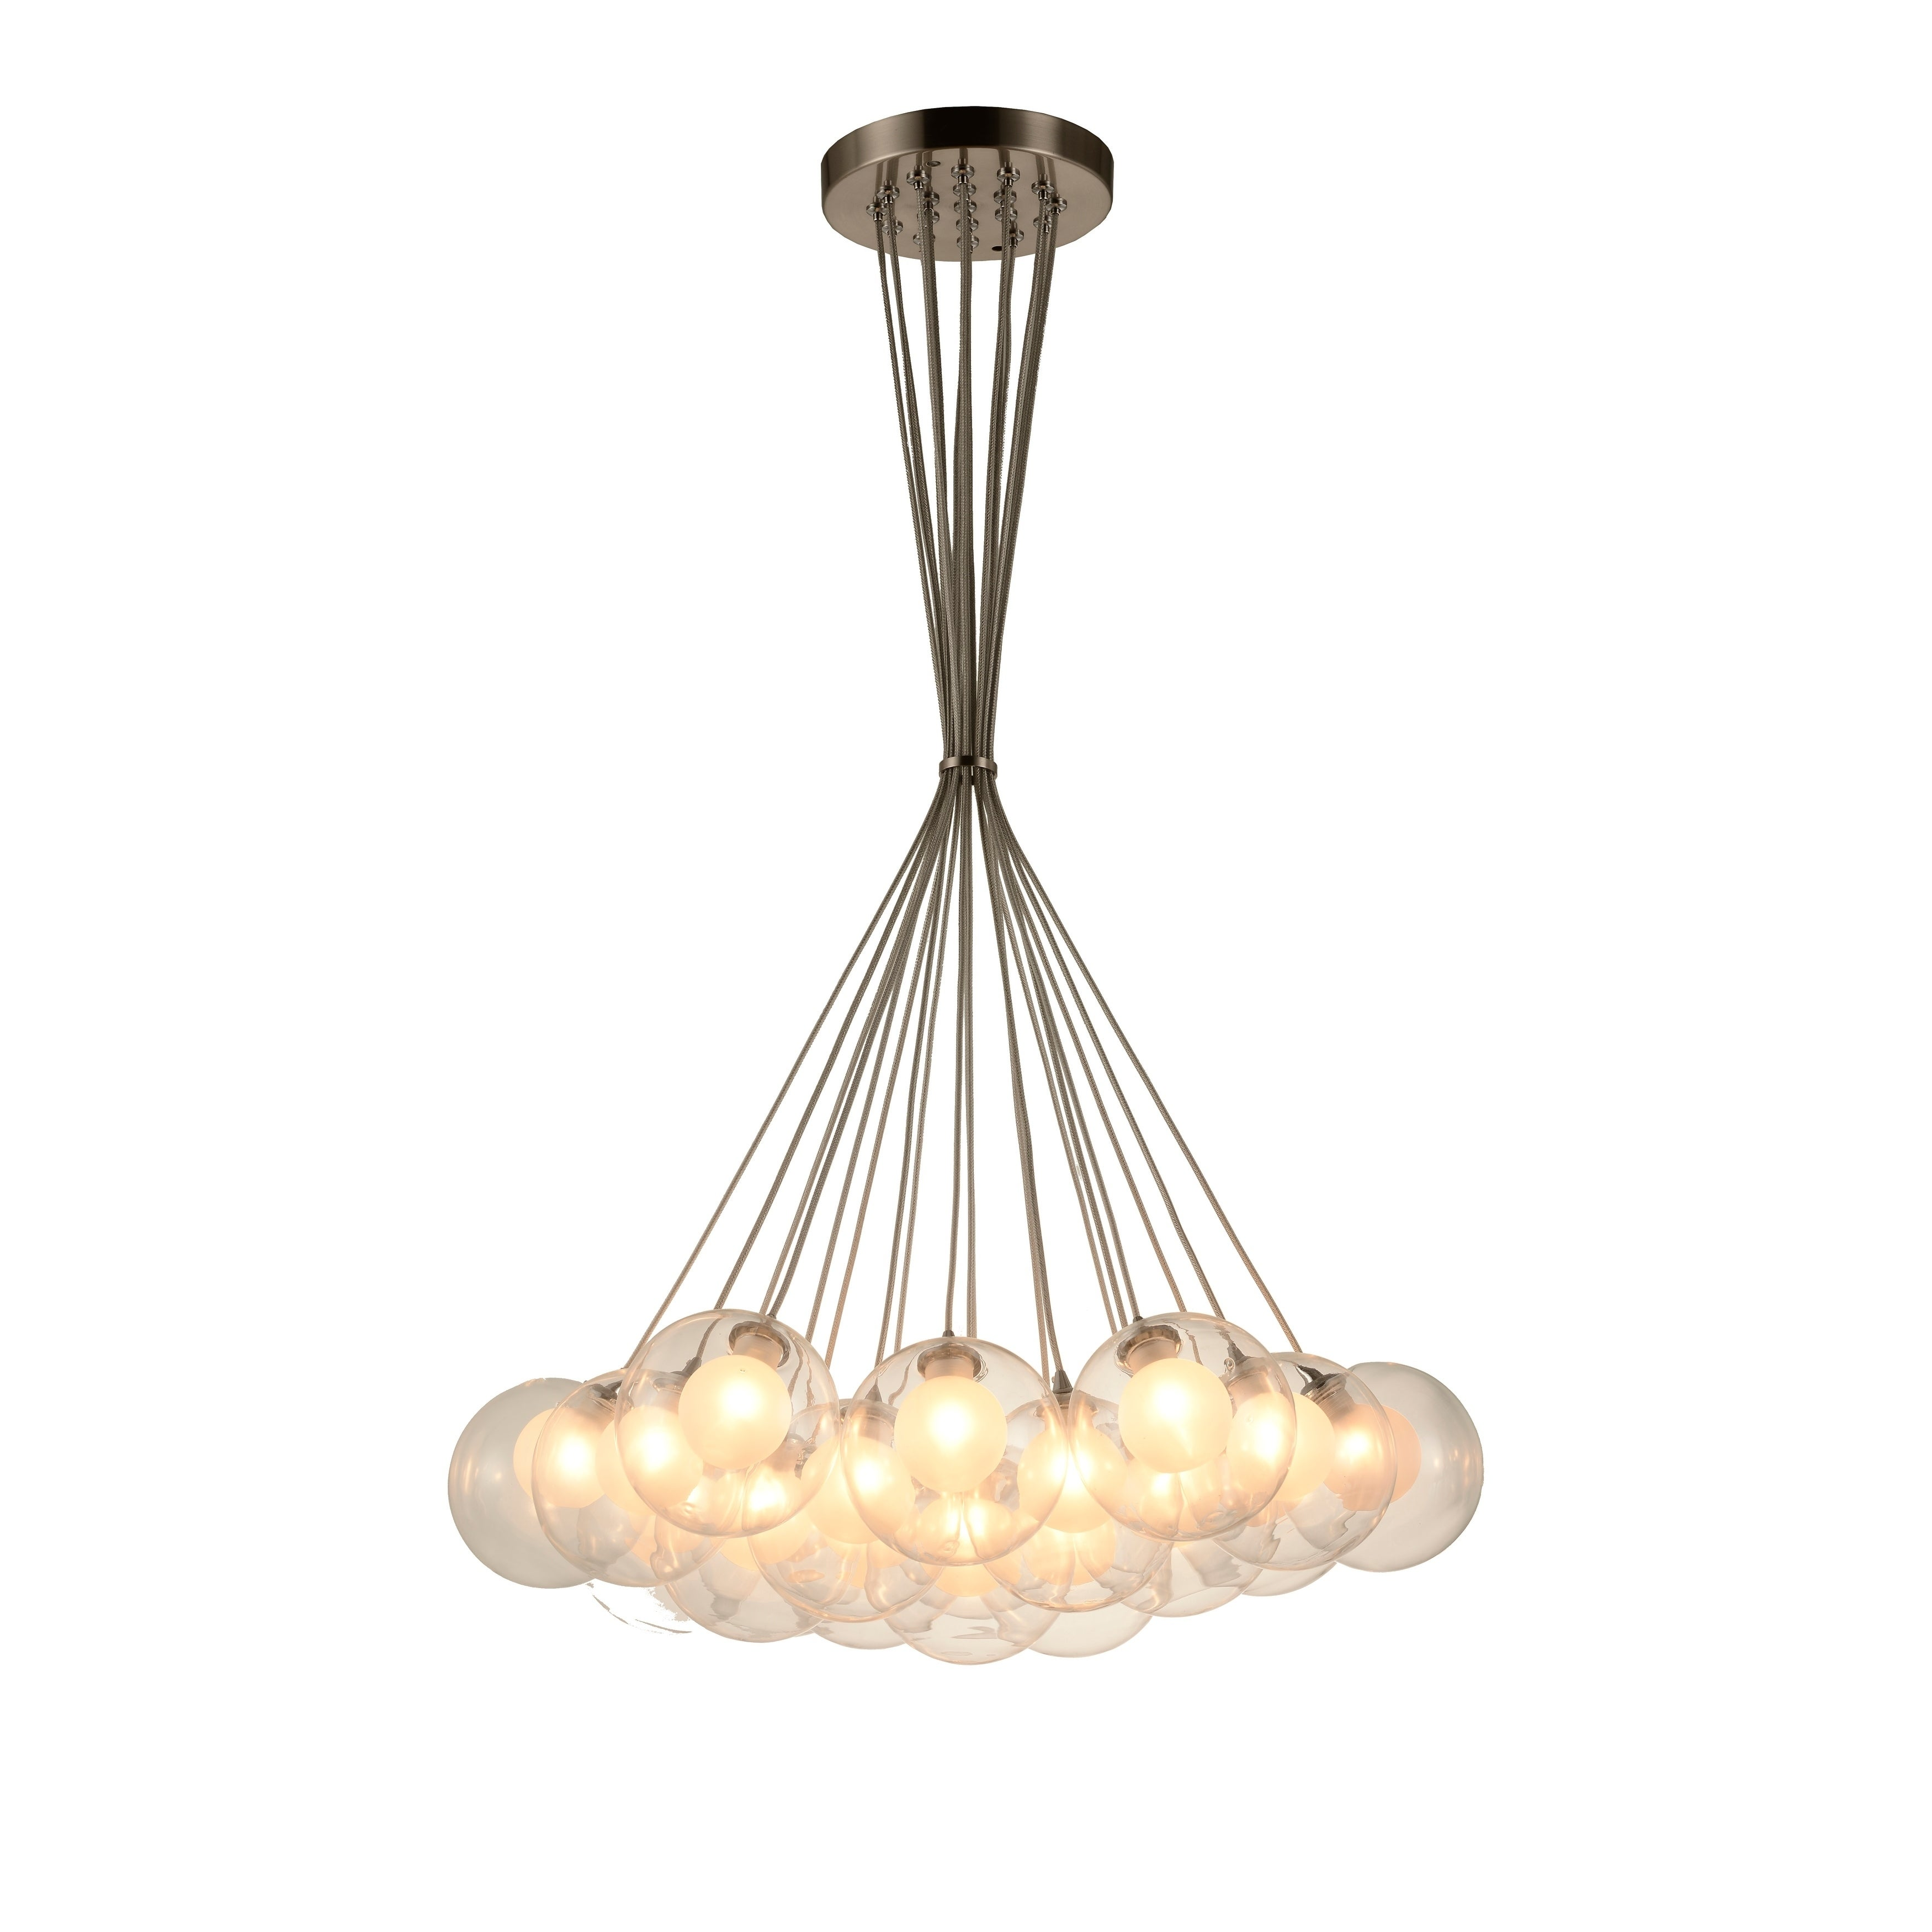 Moulin 19 Light Matte Nickel Halogen Led Clear And Frosted Glass Ball Cluster Pendant Light Large Large Pendant Overstock Com Shopping The Best Deals On Pendant Lights 35285070